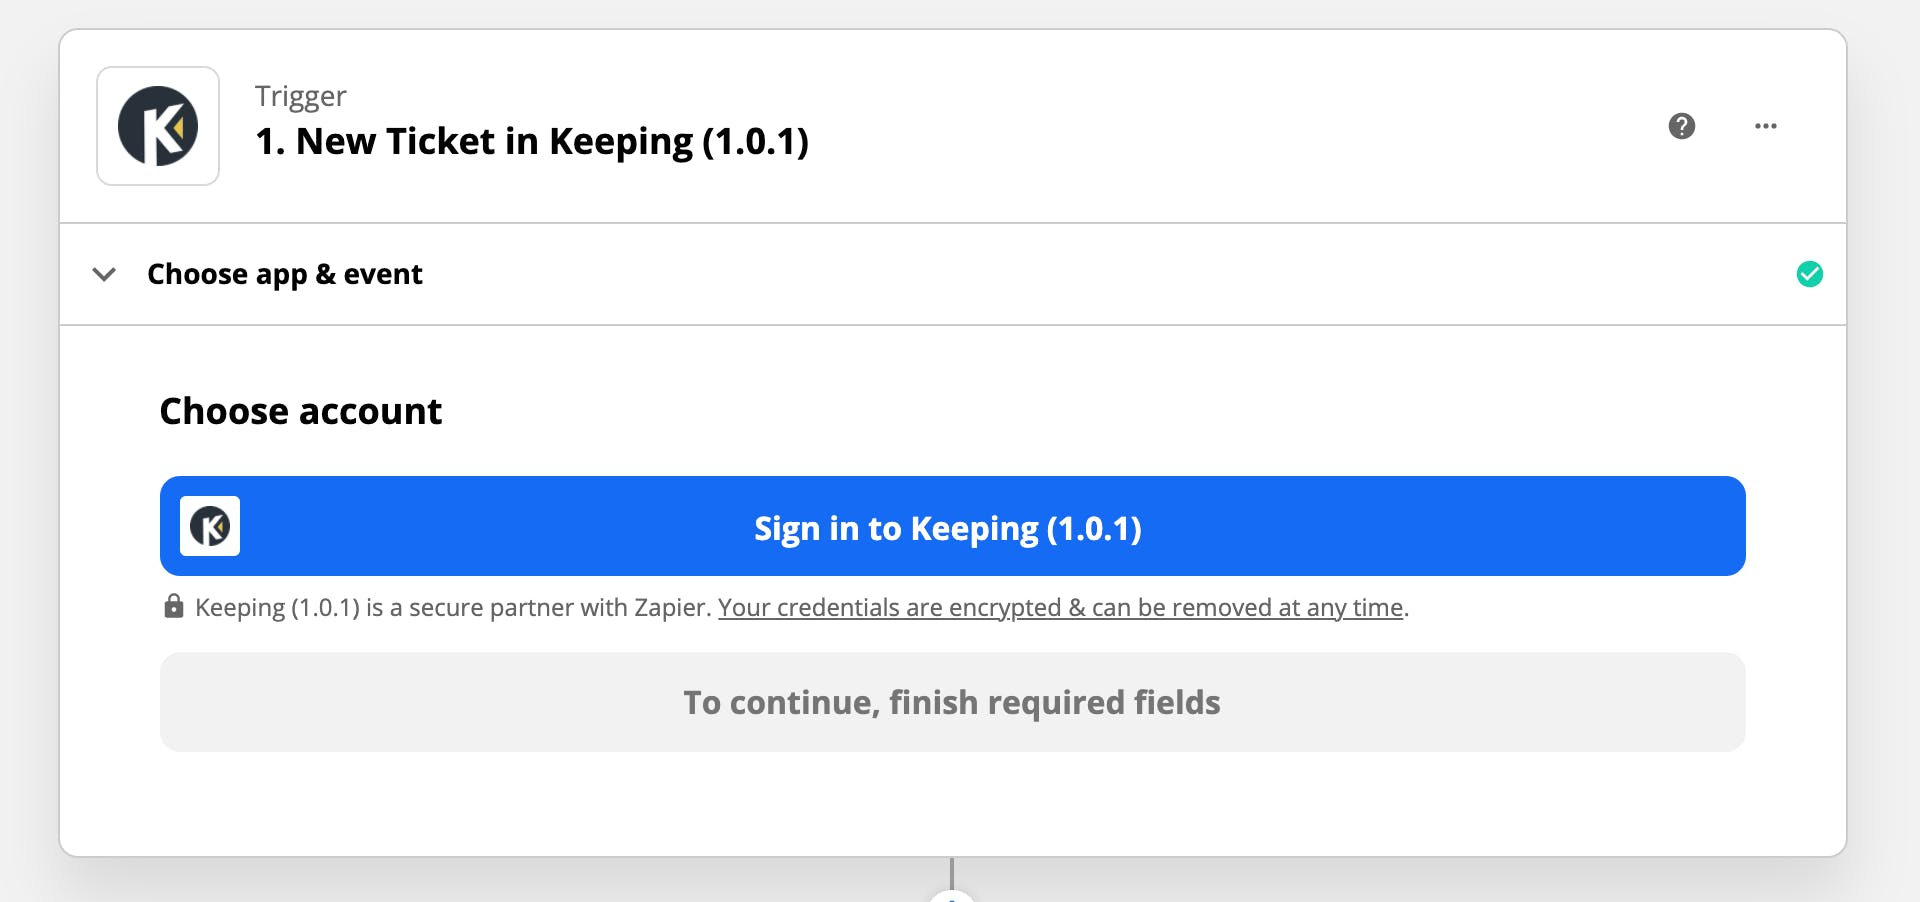 Sign in to Keeping